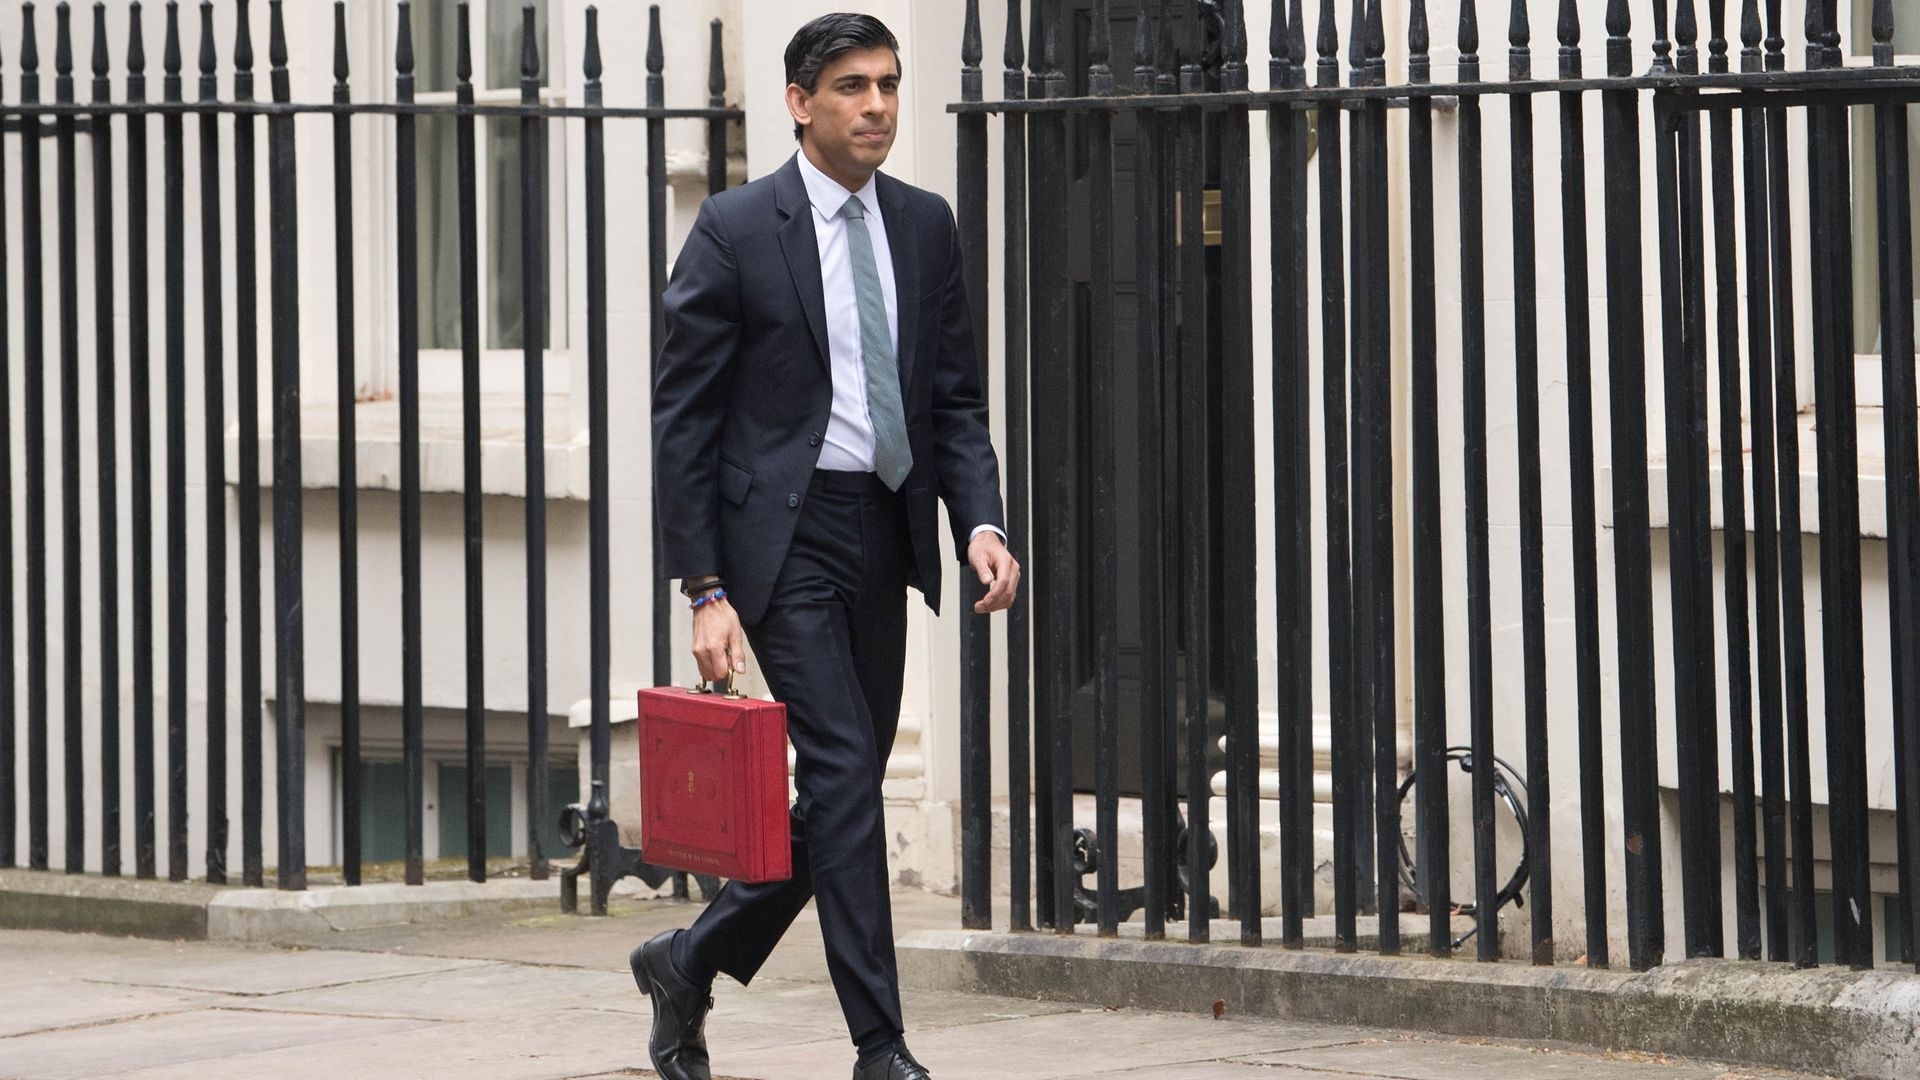 Chancellor of the Exchequer, Rishi Sunak outside 11 Downing Street, London - Credit: PA